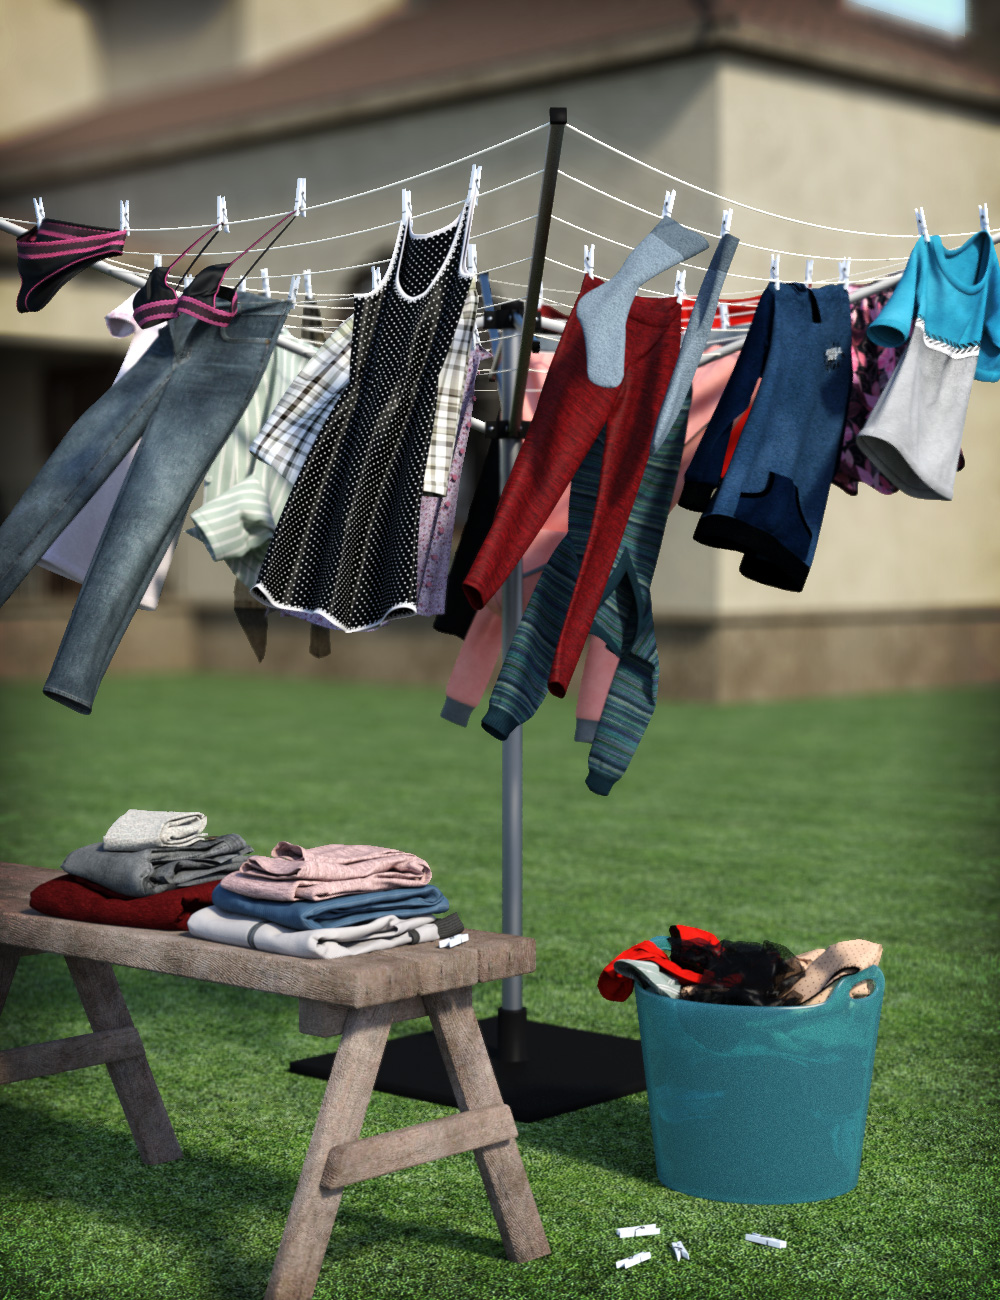 Laundry Day Mega Set by: esha, 3D Models by Daz 3D